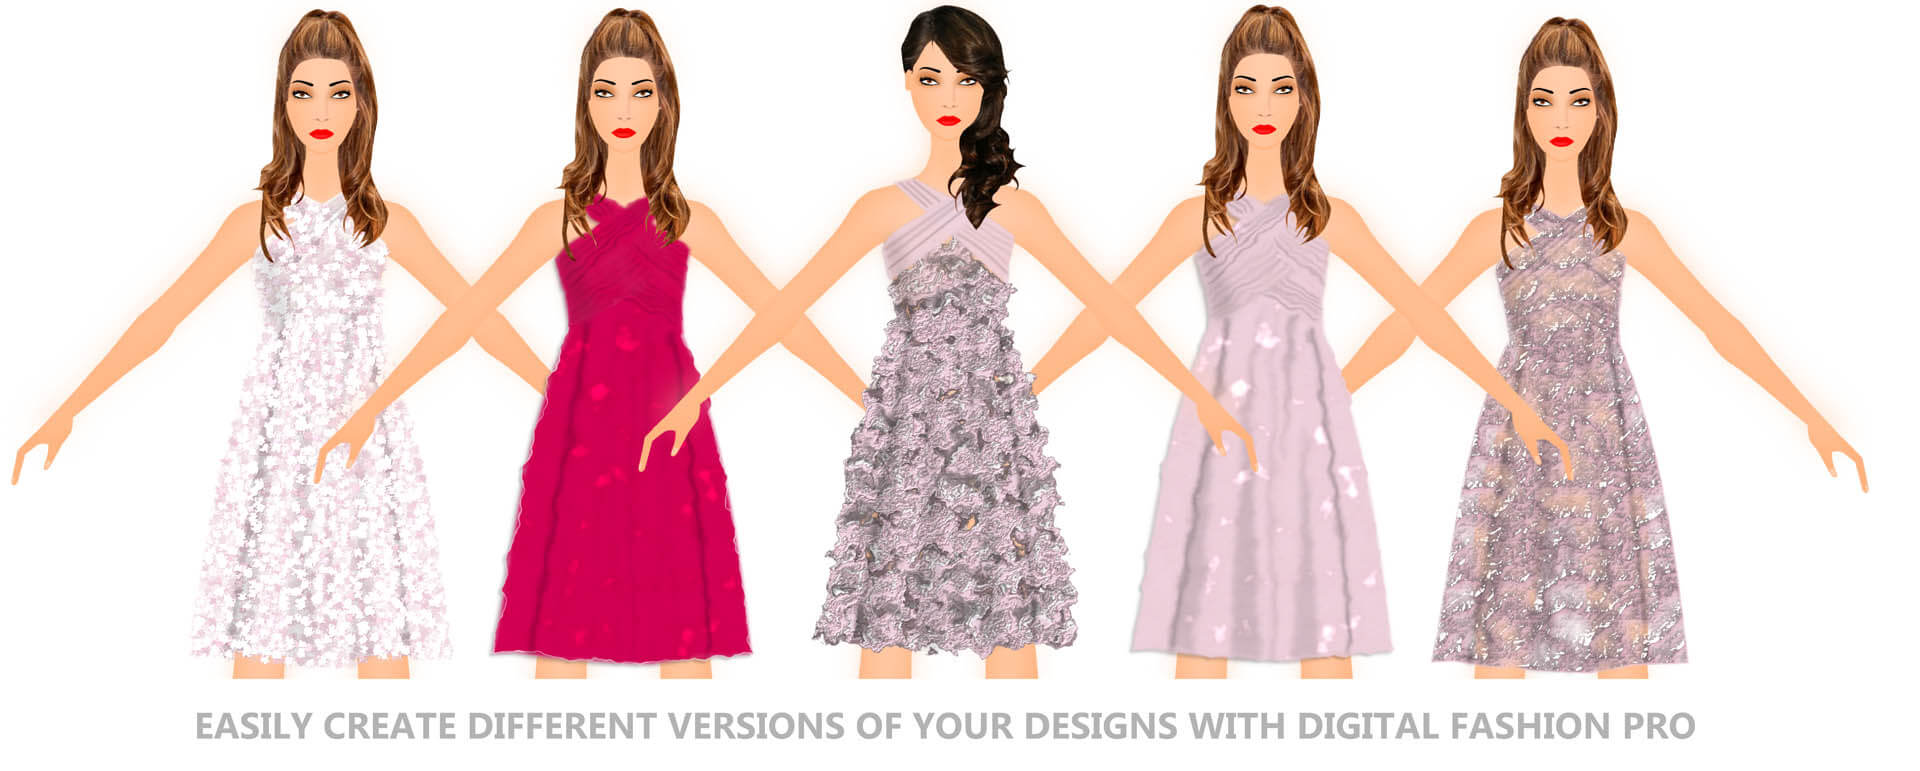 Digital Fashion Pro - Designing Dresses - Fashion Design Illustration Software